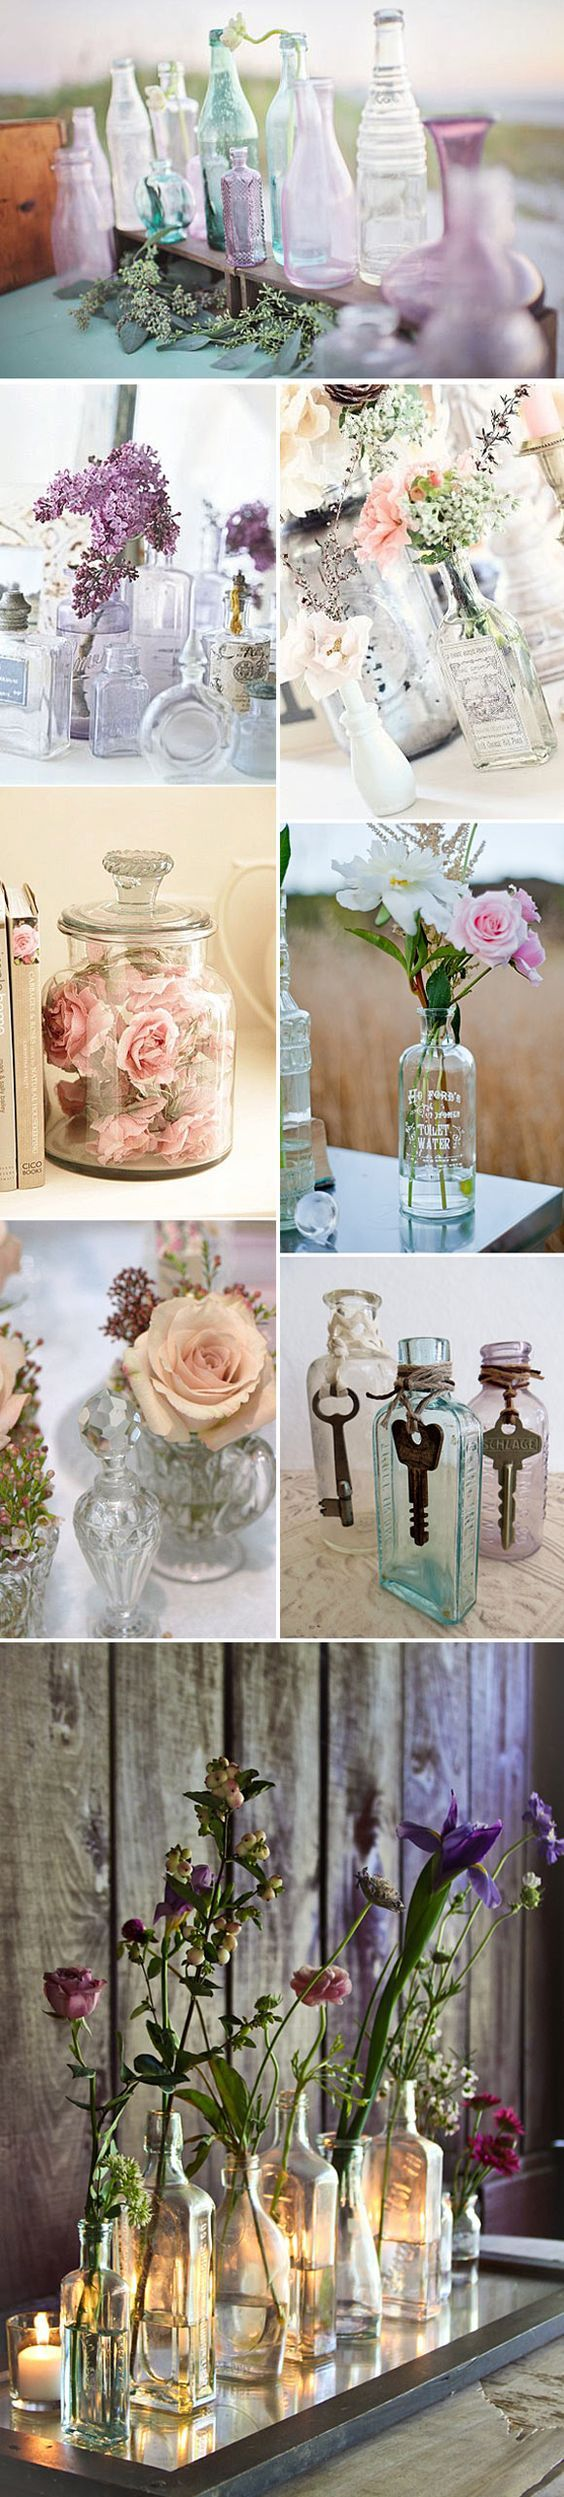 Ideas para decorar con botellas de cristal estilo vintage: